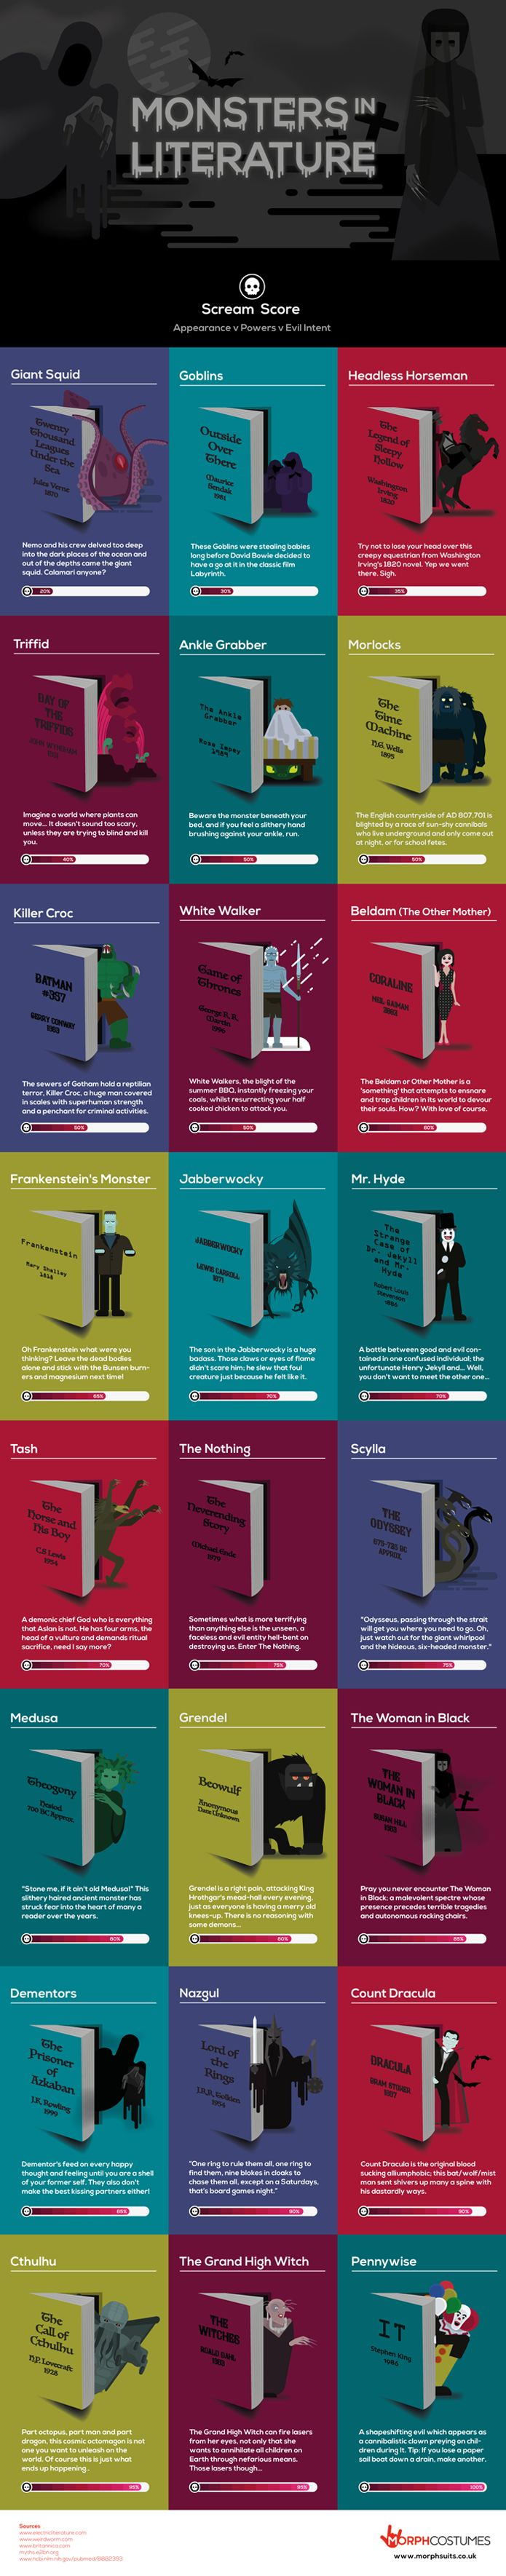 Infographic: The Scariest Monsters in Literature | Blog | TheReadingRoom ... I've only read six of these books. I don't remember any of the respective monsters being that terrifying/scary (the Giant Squid, Frankenstein's Monster, the Dementors, Nazgul, Count Dracula, and the Grand High Witch).